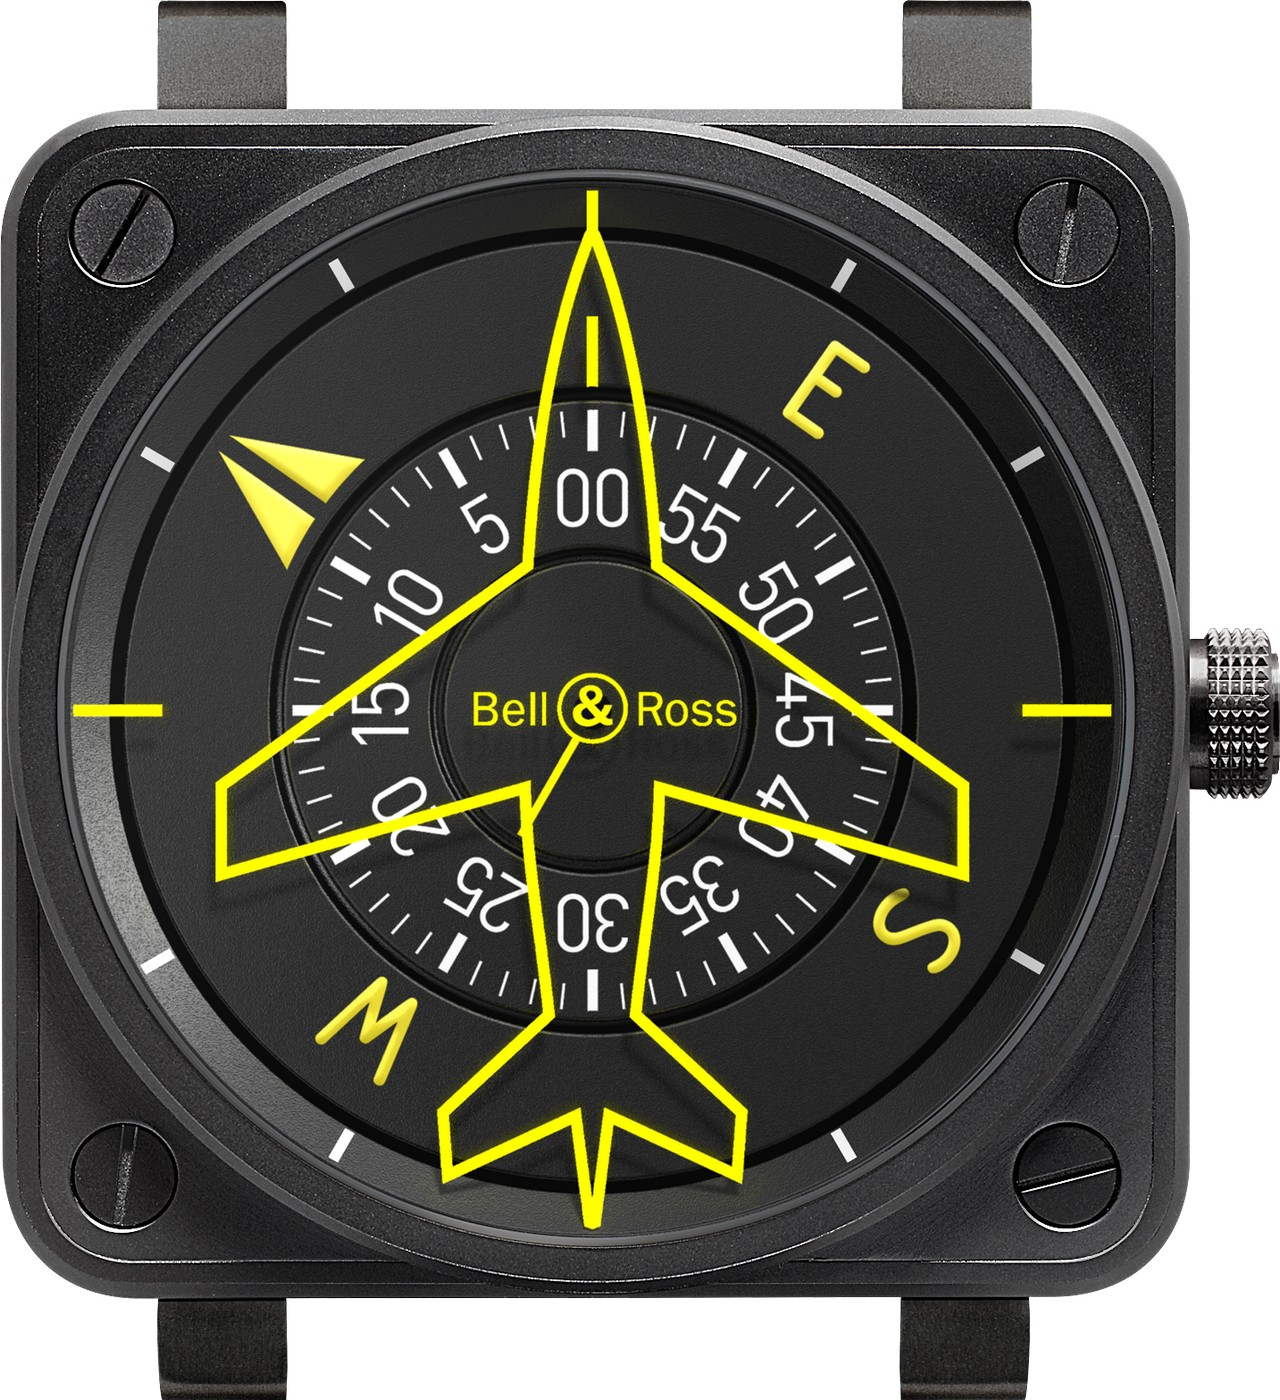 baselworld-2013-bell-ross-collezione-aviaton-br01-heading-indicator_0-100_2